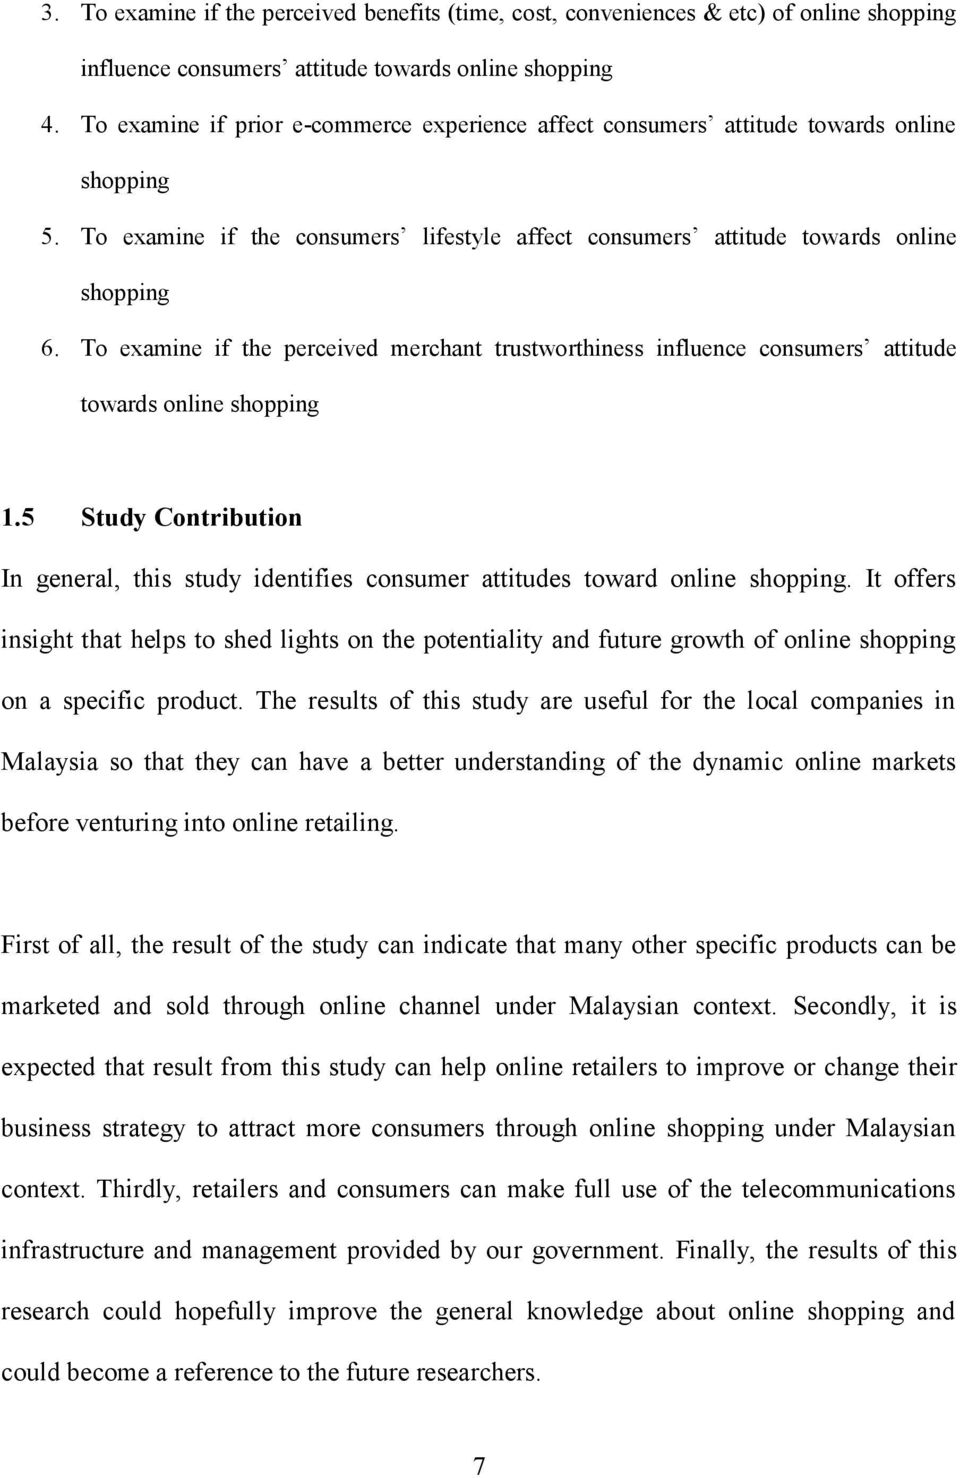 6a6ffafa4 To examine if the perceived merchant trustworthiness influence consumers attitude  towards online shopping 1. 18 1.6 Limitation of Study ...